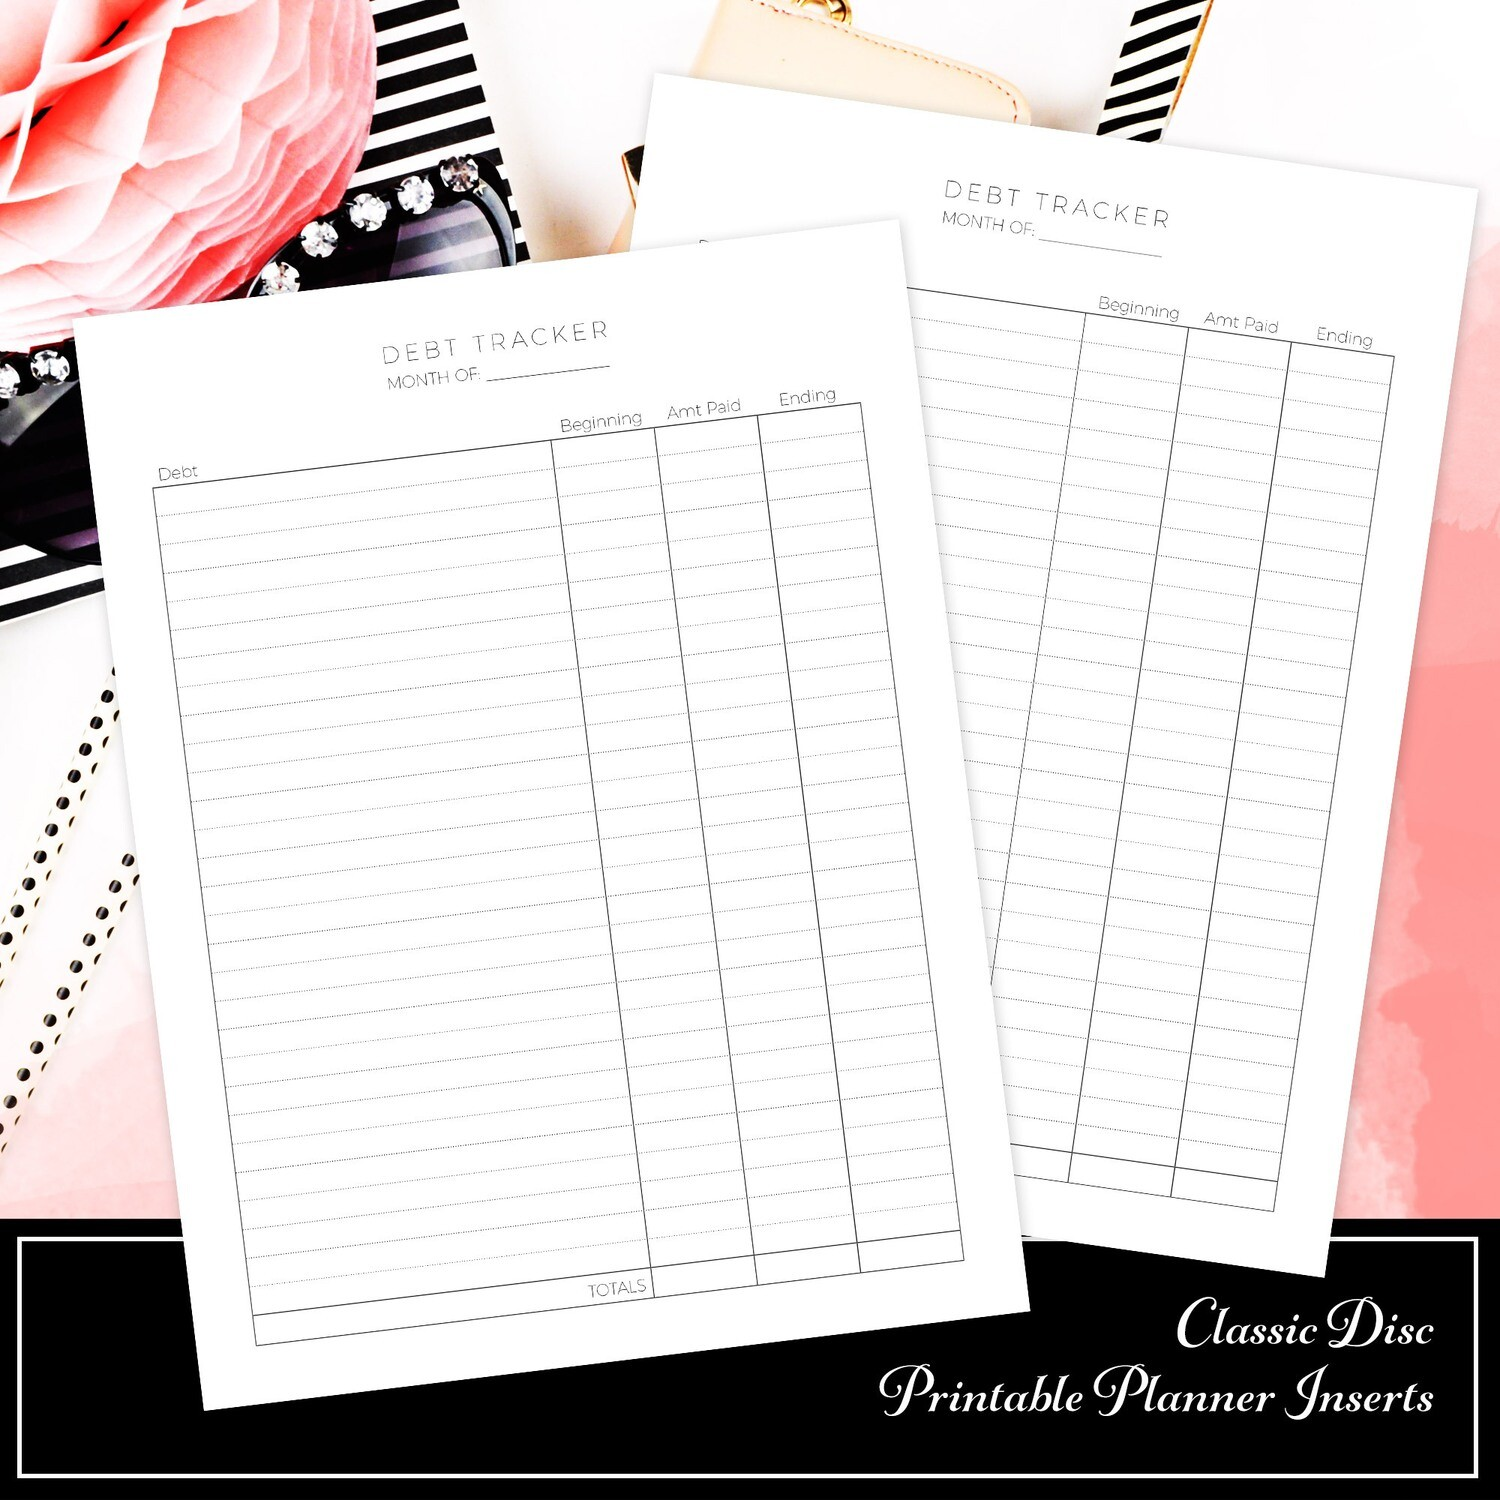 This is a picture of Debt Tracker Printable with blank